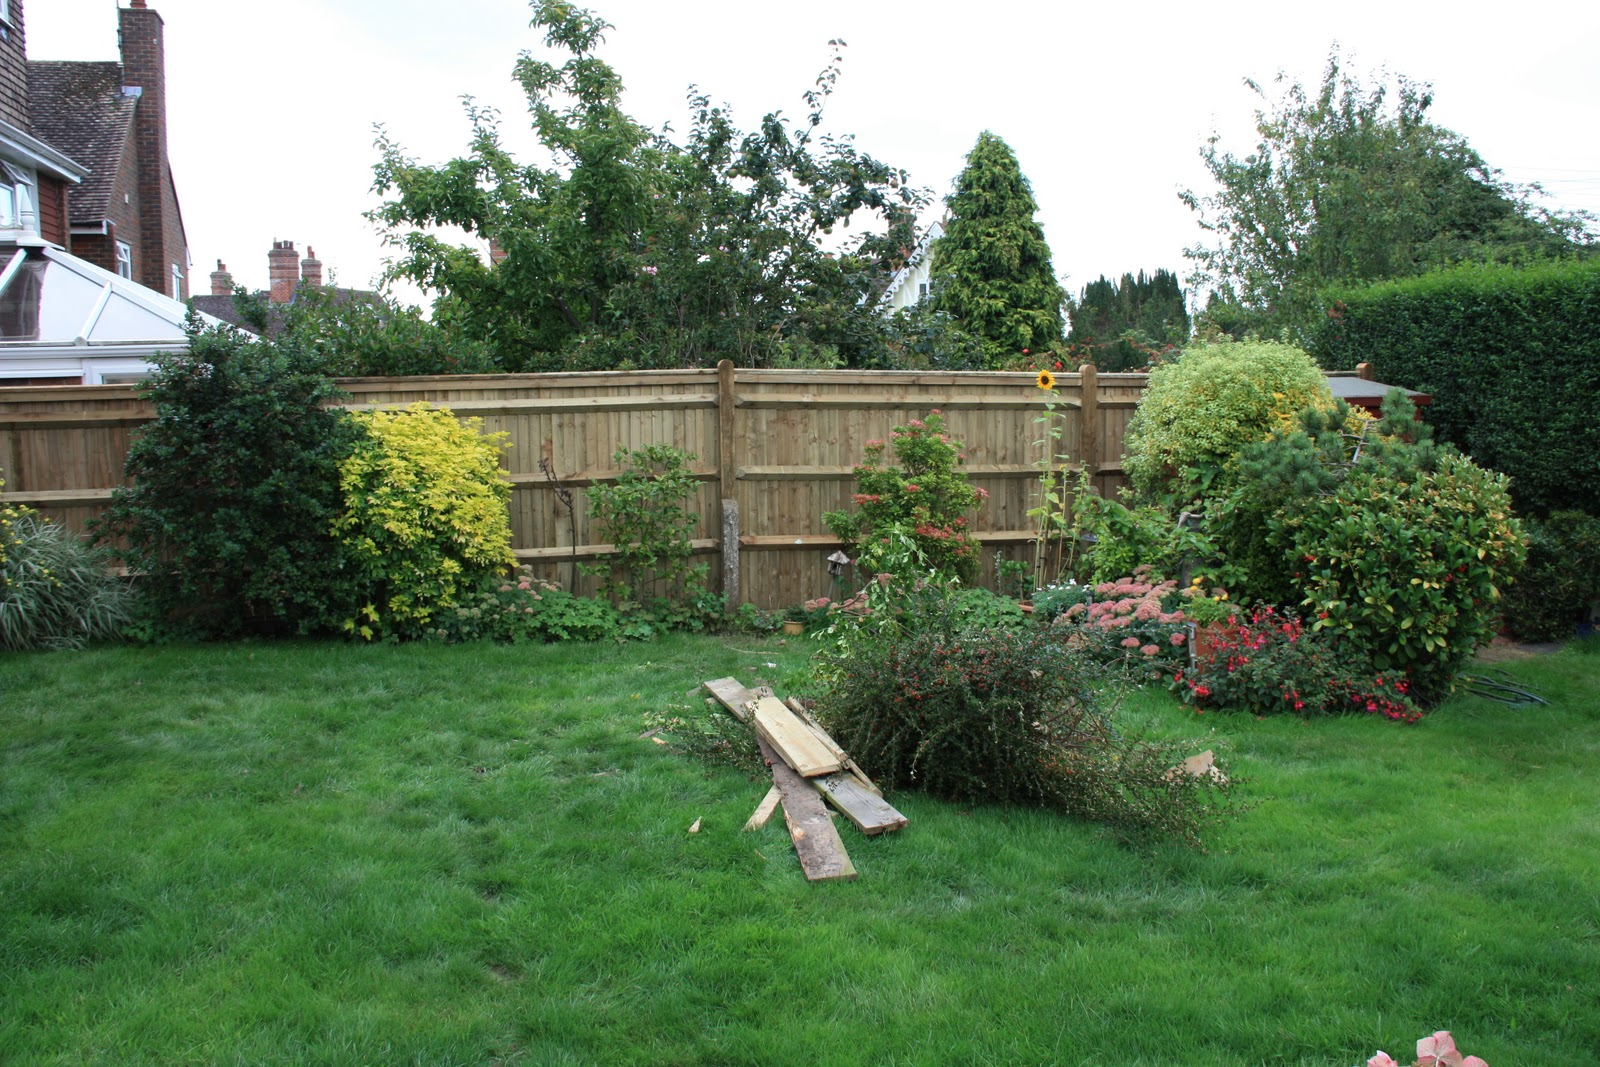 Thomas houghton gardens landscaping in west sussex simple for Landscape design sussex